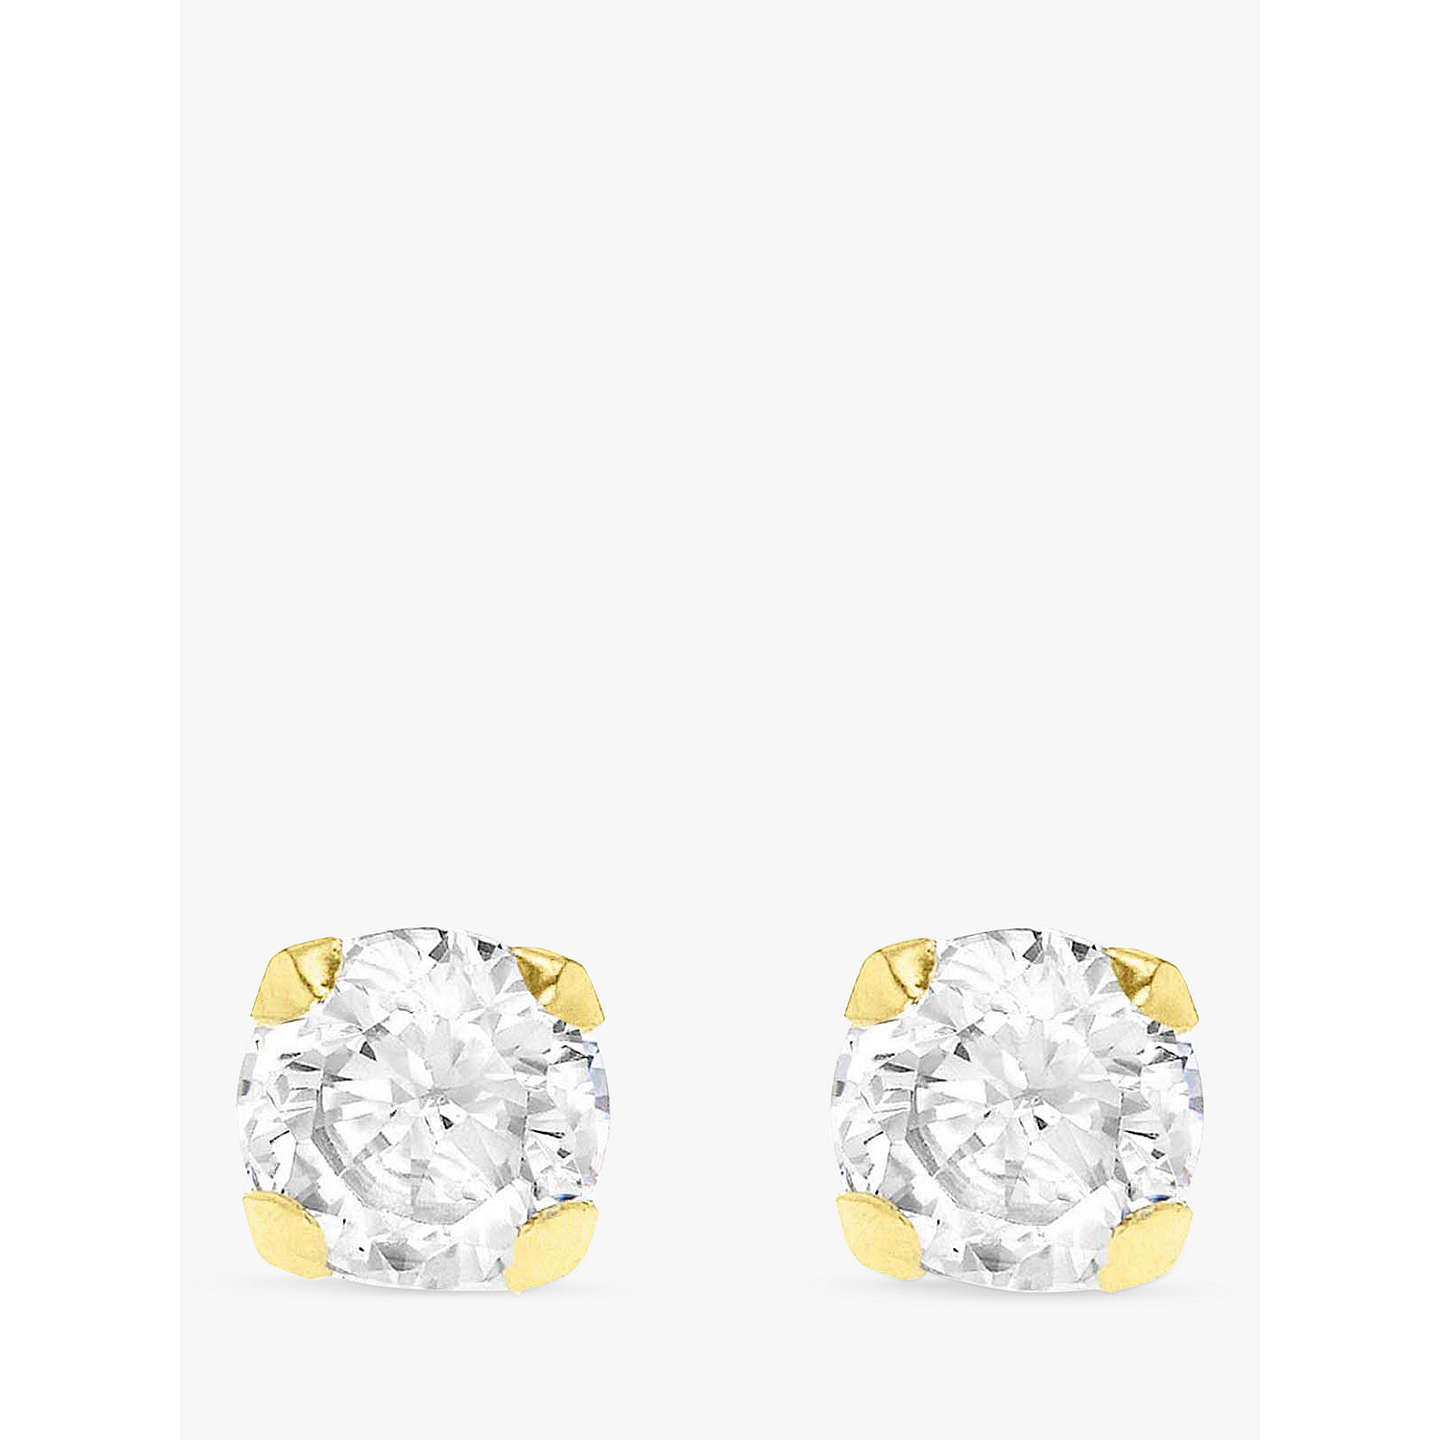 jewellers sterling silver image cubic a stud zirconia earrings grahams